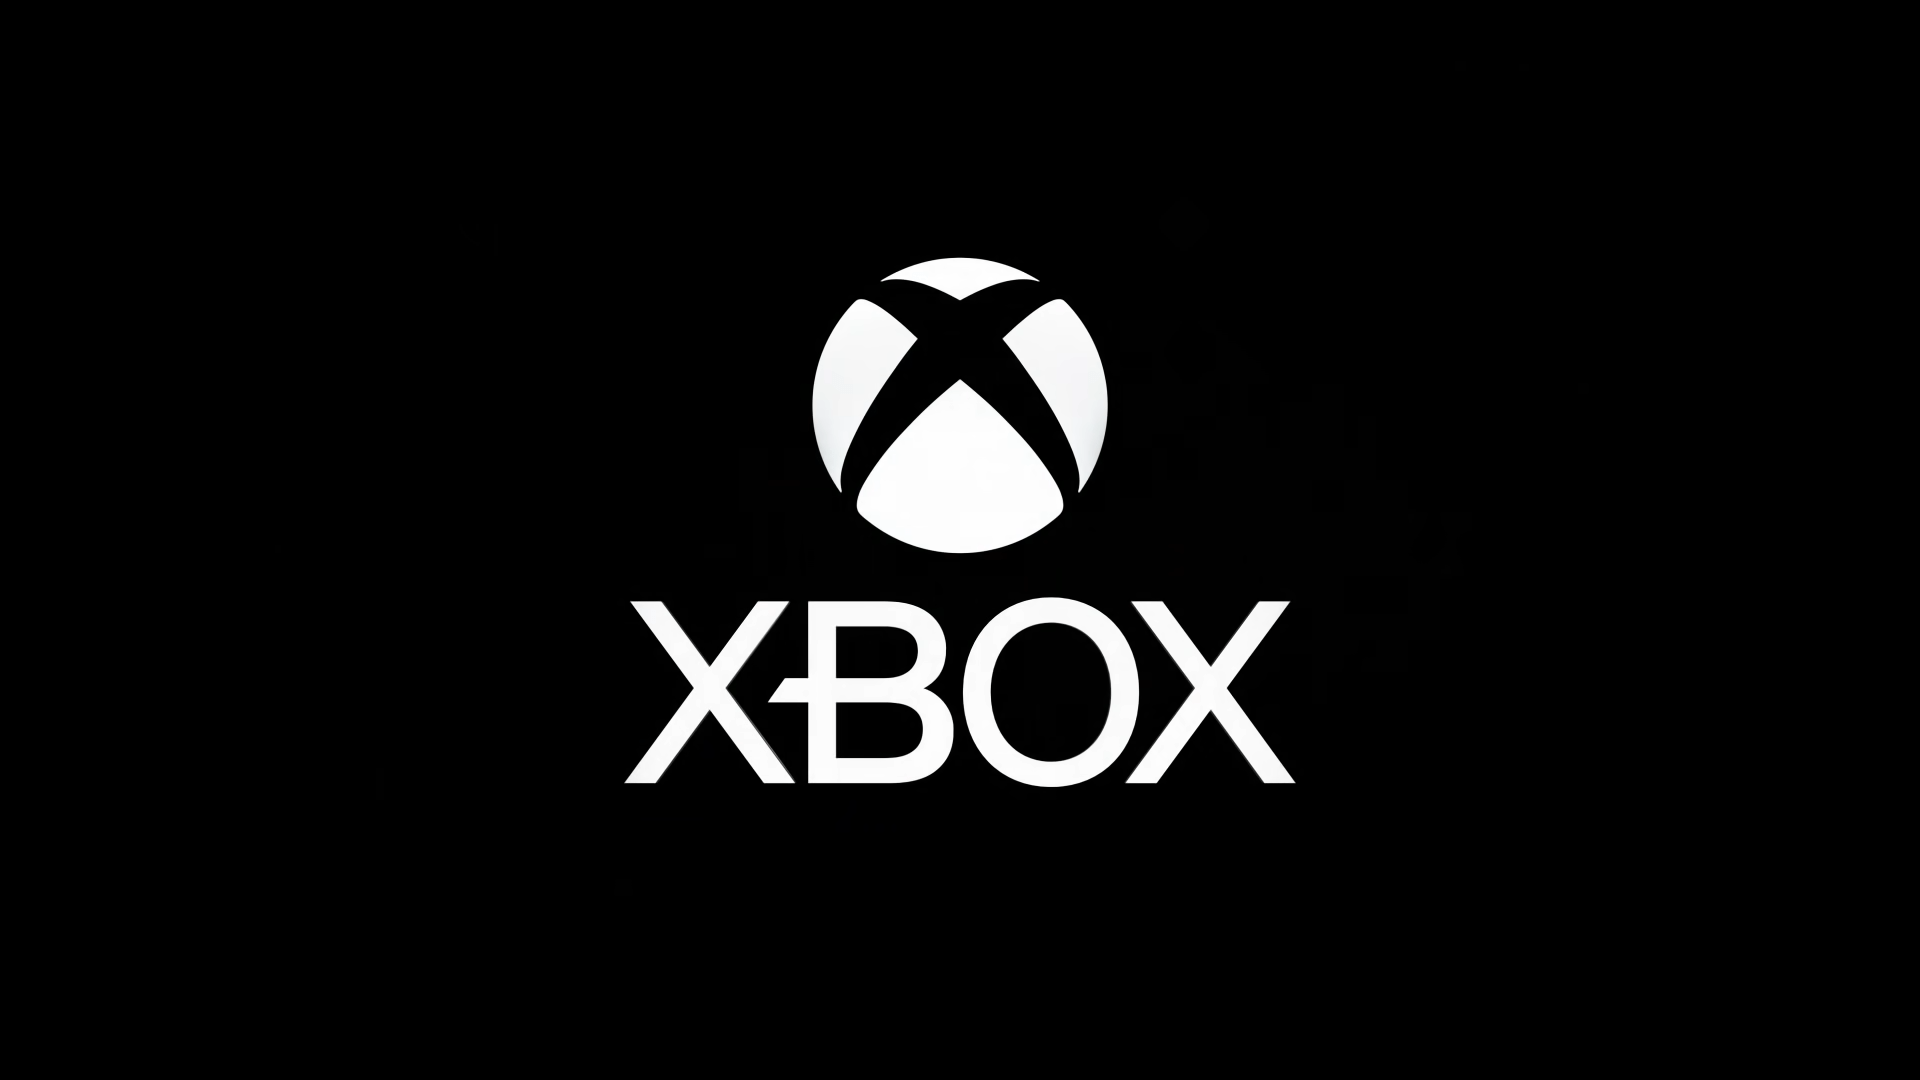 Microsoft Increases Cost Of Xbox Live Gold Significantly, The First Price Increase In Almost 10 Years